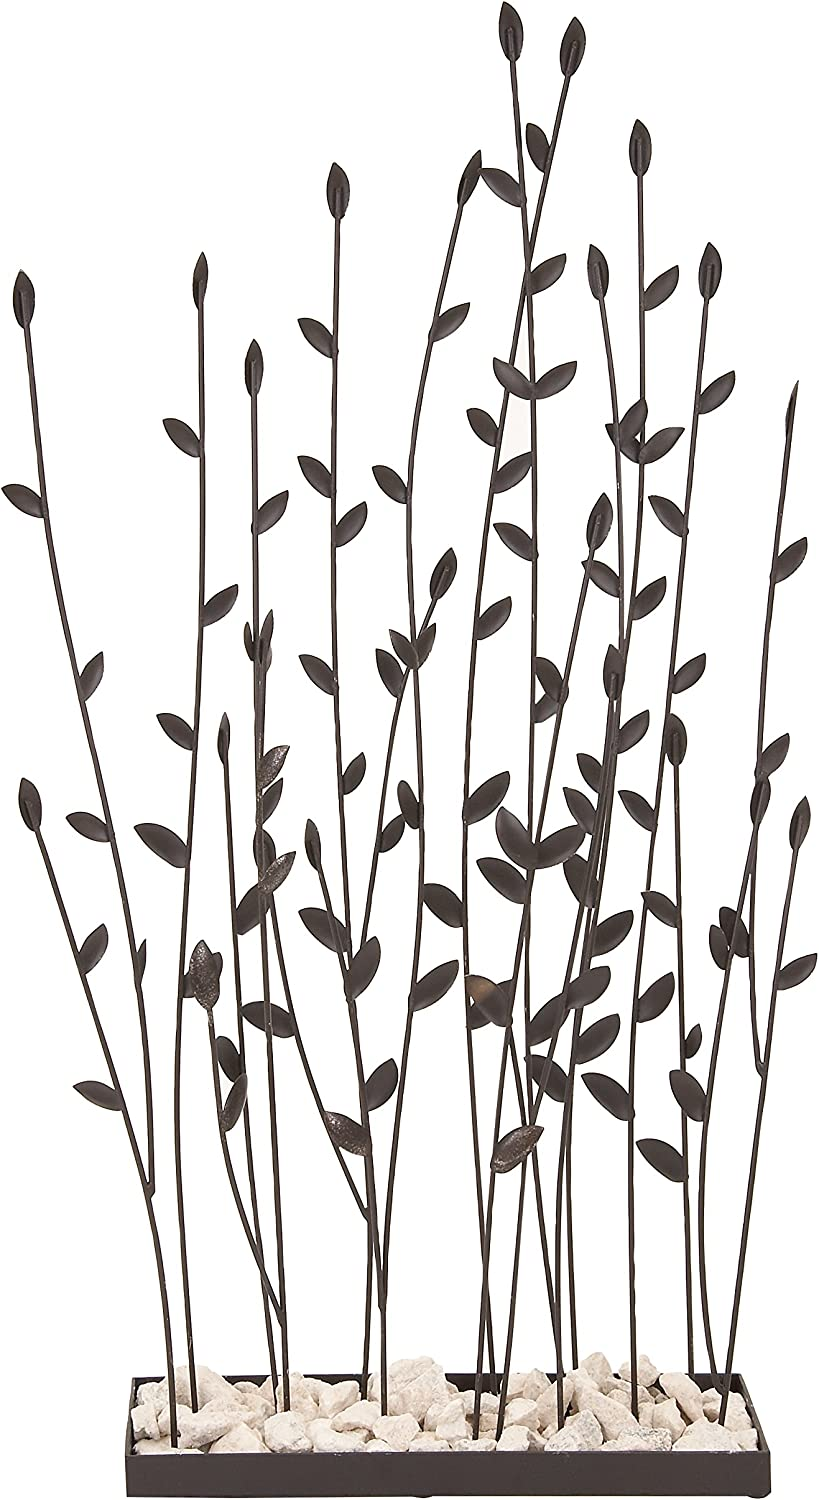 Deco 79 Metal Rocks Table Decor, 31 by 14-Inch